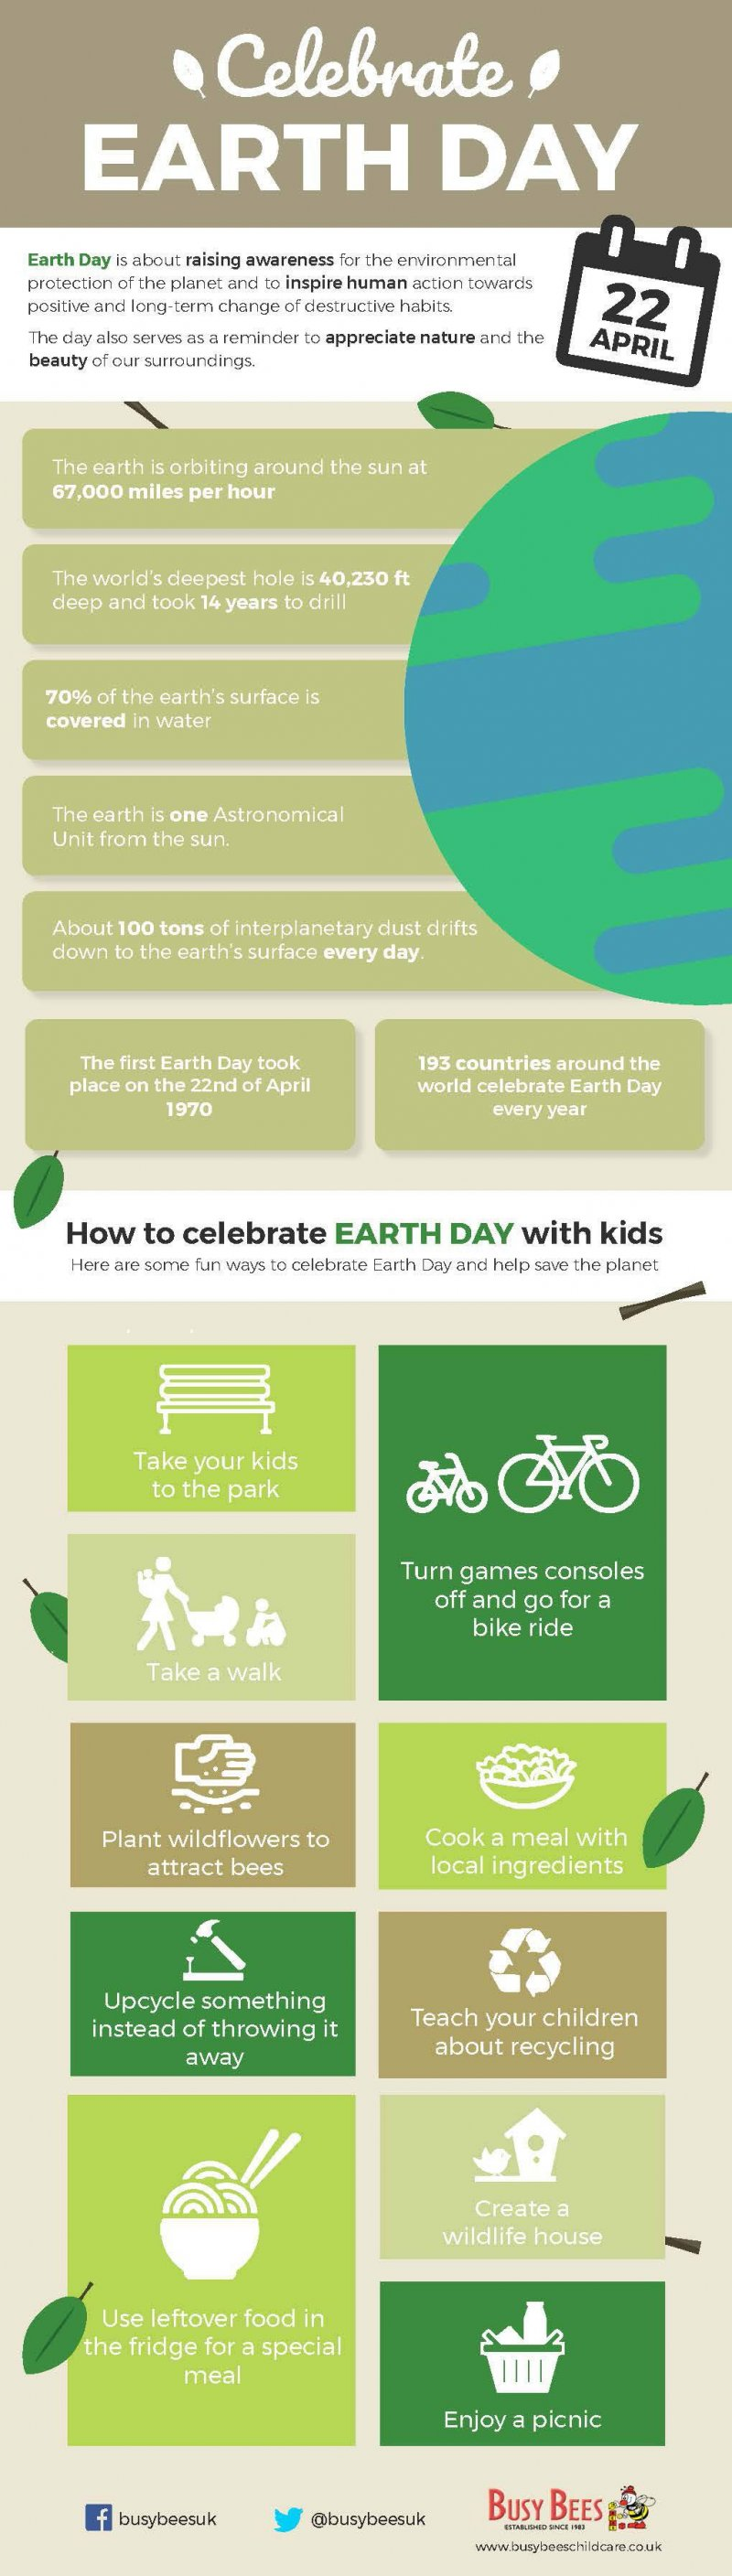 Earth day is 22nd April, but what does it mean and what's it for? How can we celebrate as a family? Read more by clicking on the link